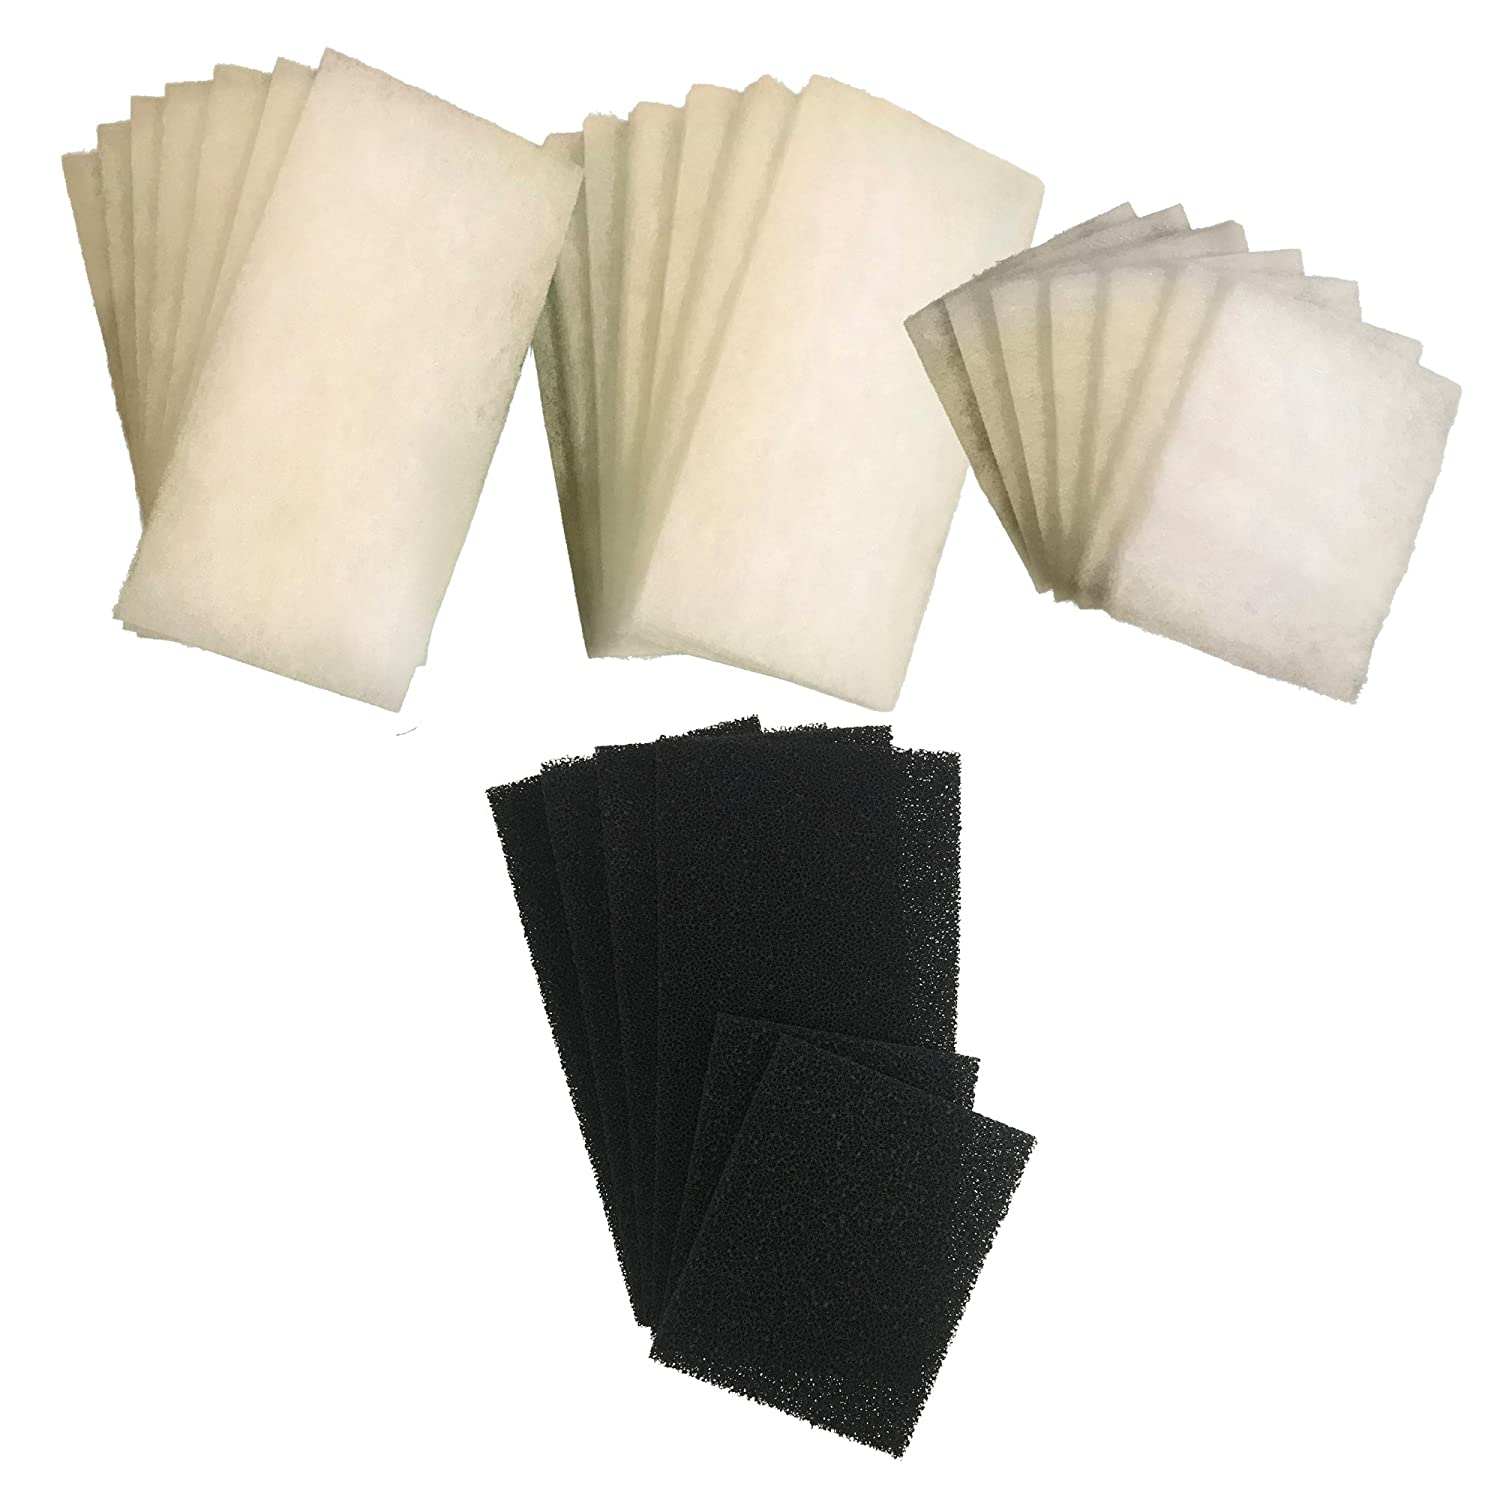 21 x AquaOne 980   980T Compatible Deluxe Poly Wool Filter Pads (7 Sets) and 6 X Carbon Filter Pads